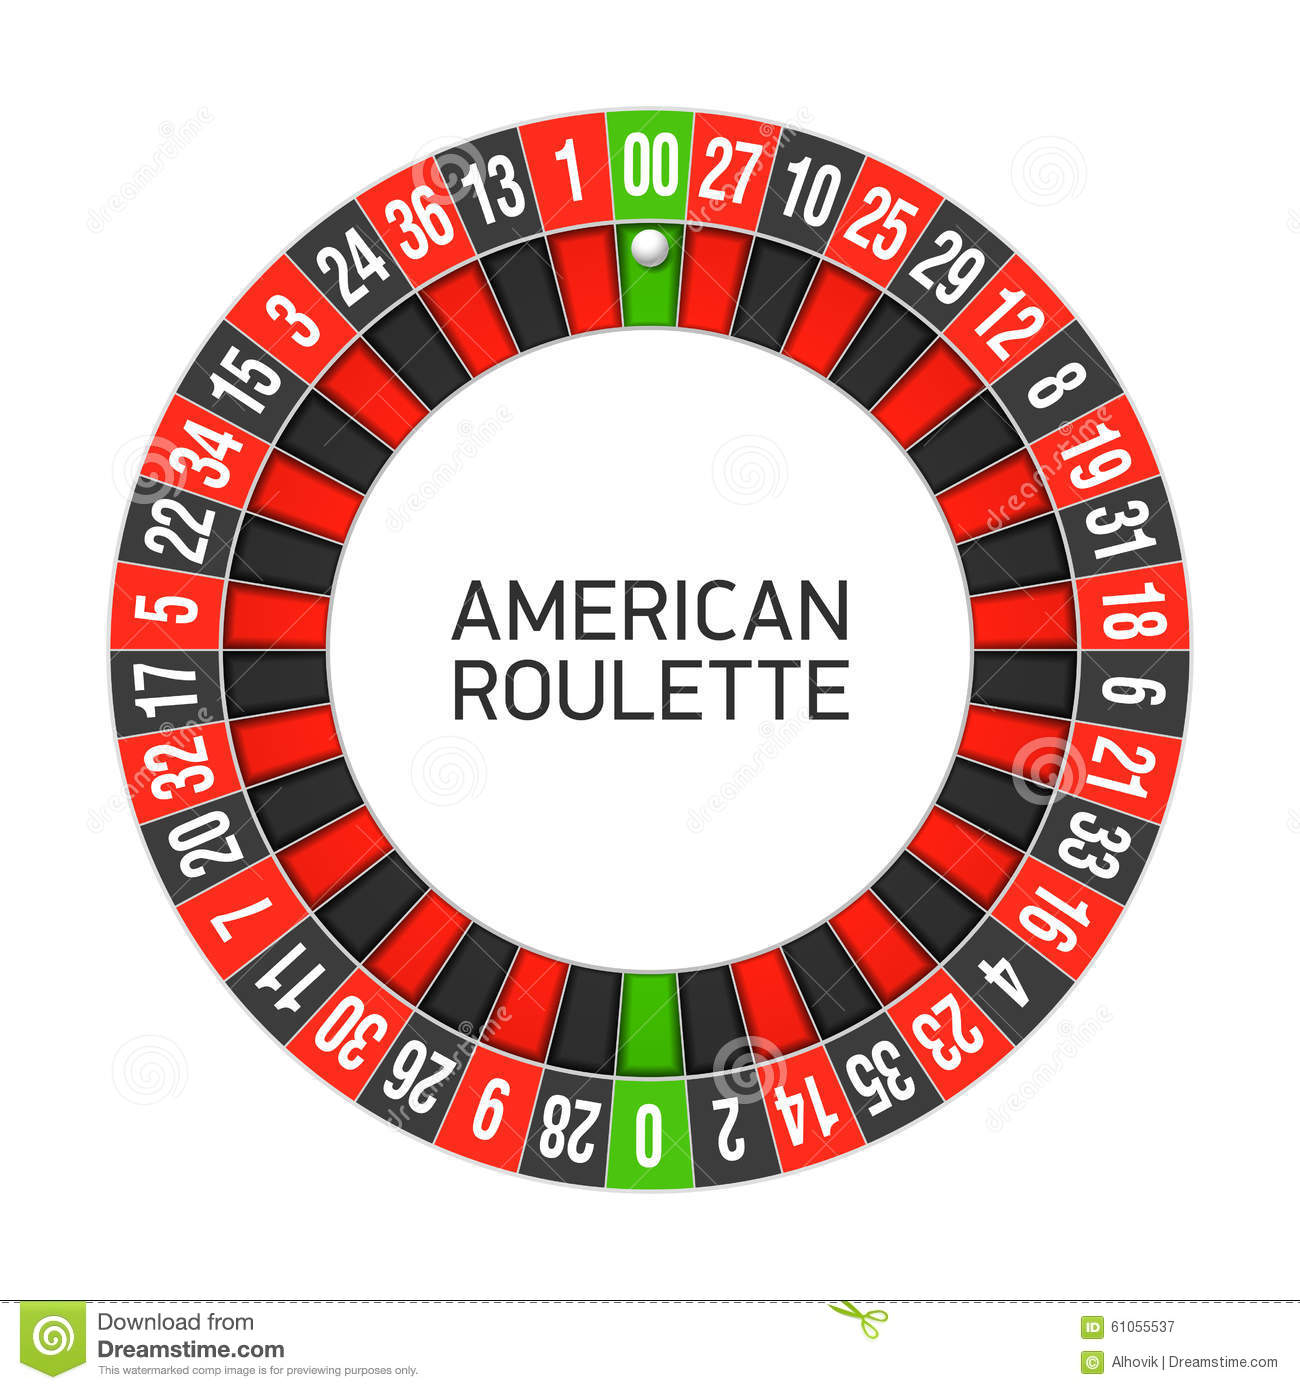 Roulette wheel vector free download how to win at computer roulette